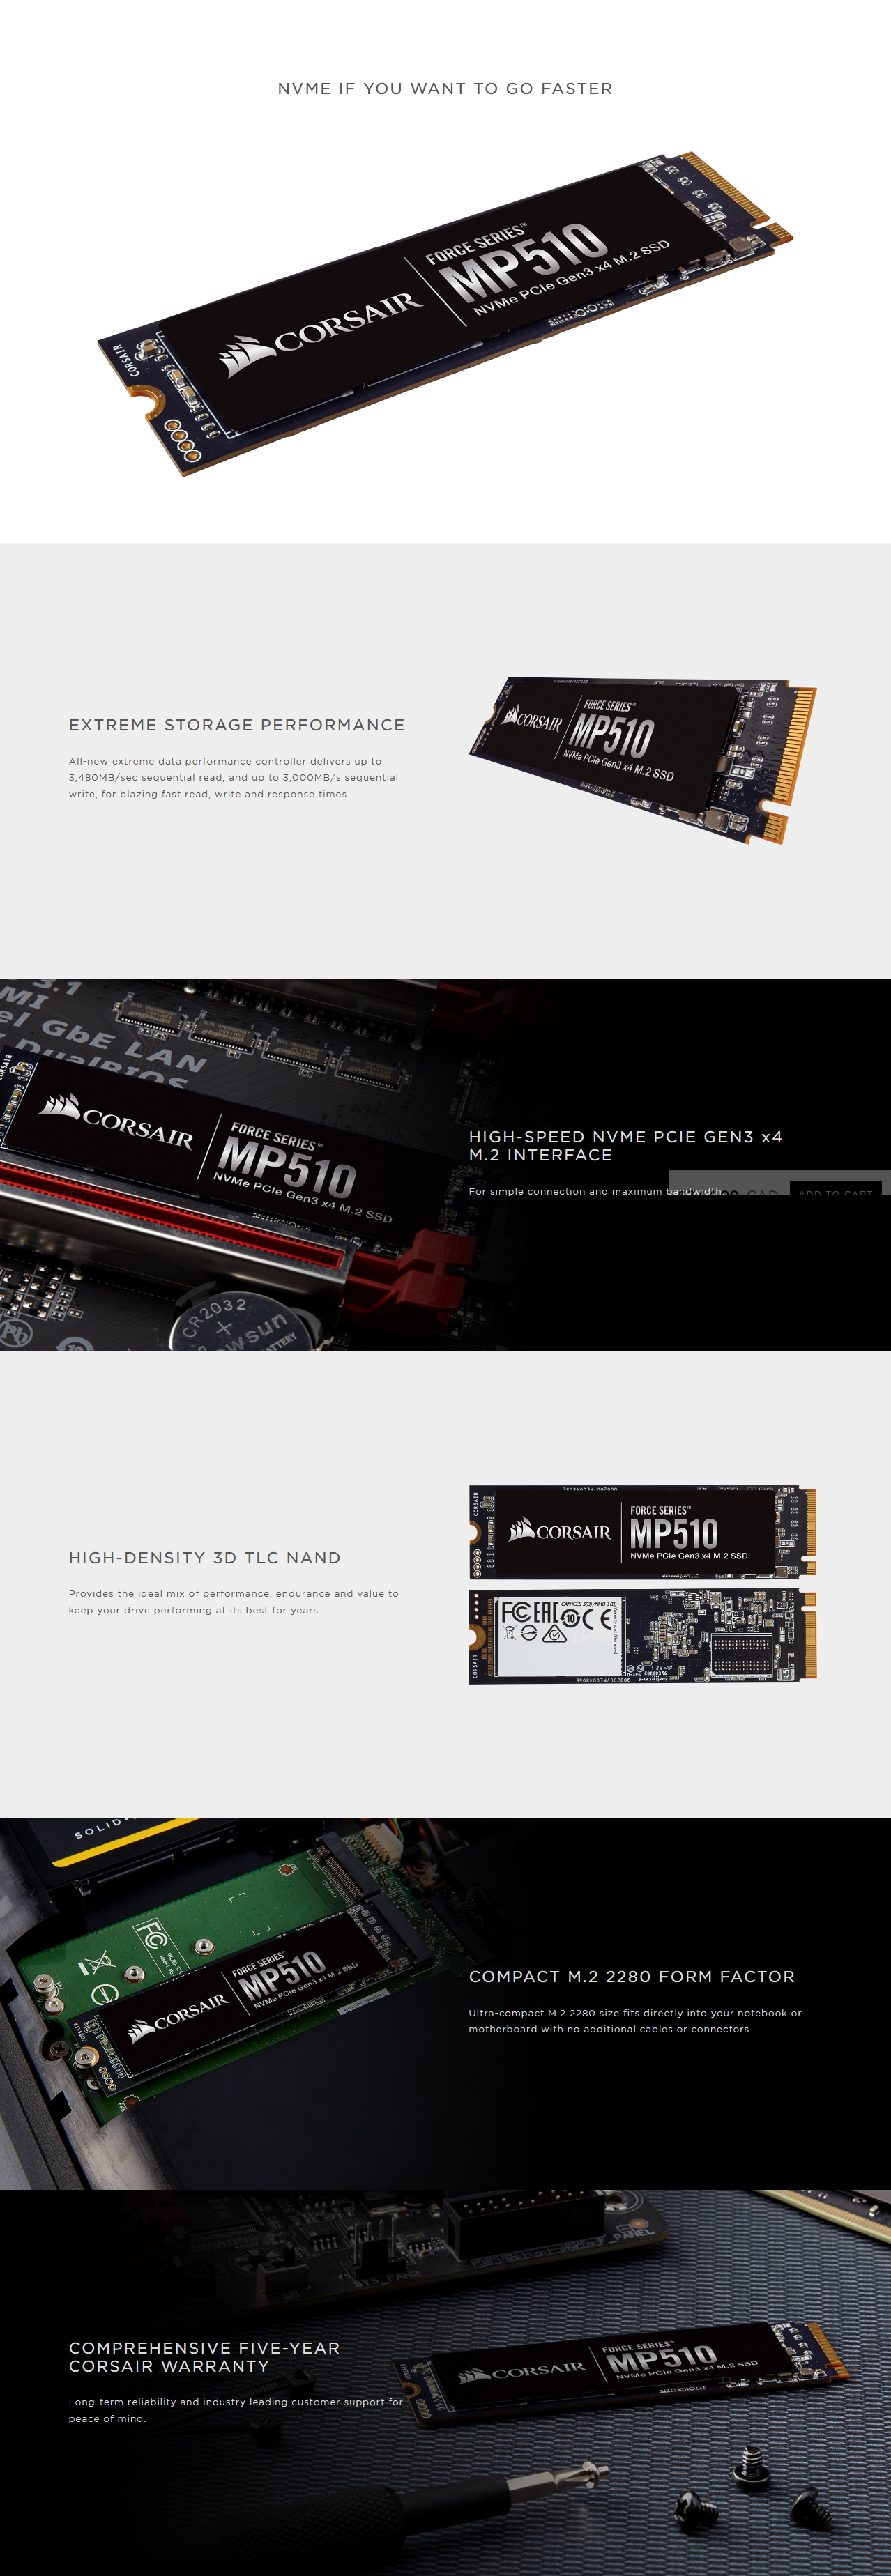 A large marketing image providing additional information about the product Corsair Force MP510 1920GB M.2 NVMe PCIe Gen3 SSD - Additional alt info not provided